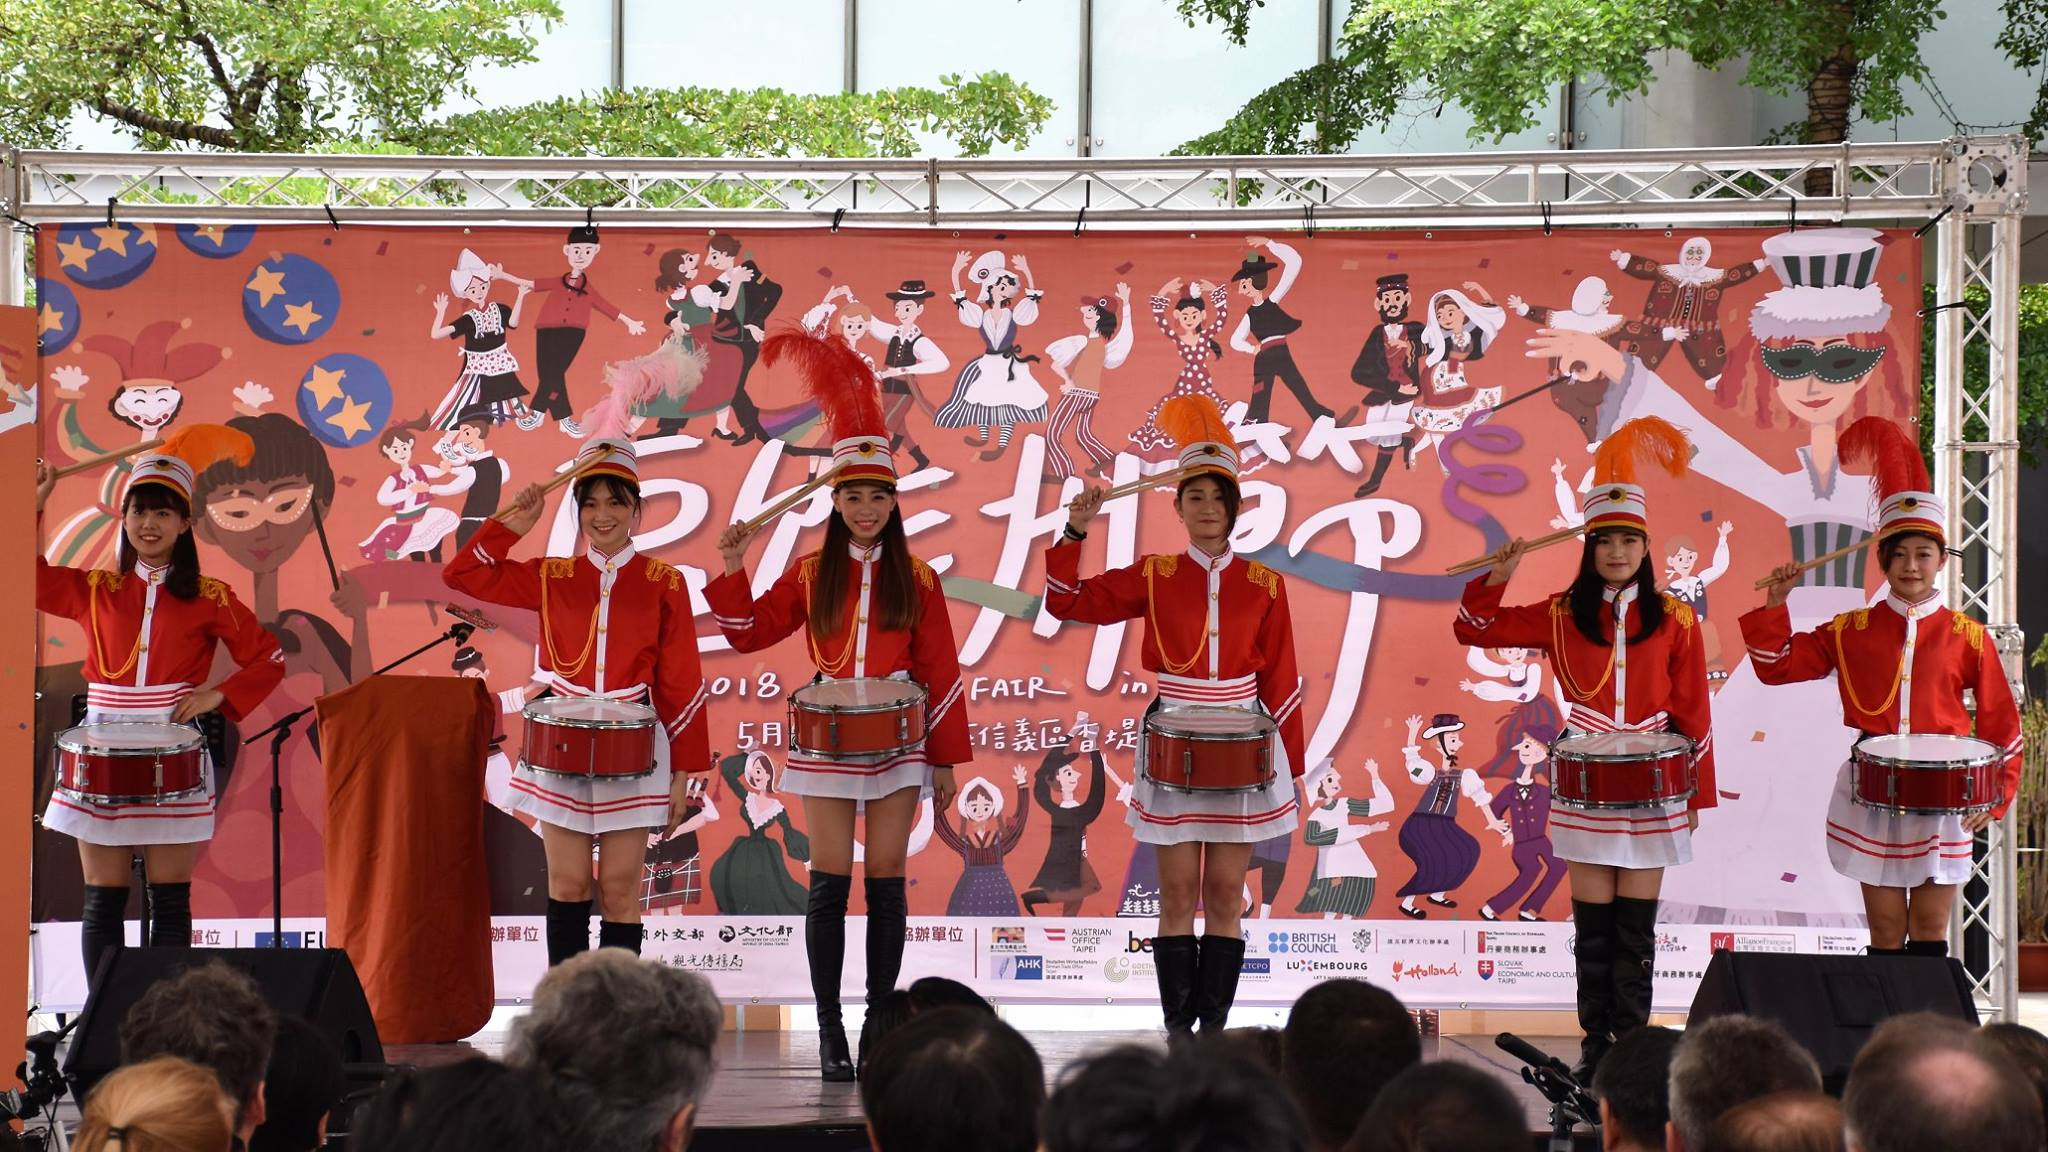 Marching band: 儀隊鼓